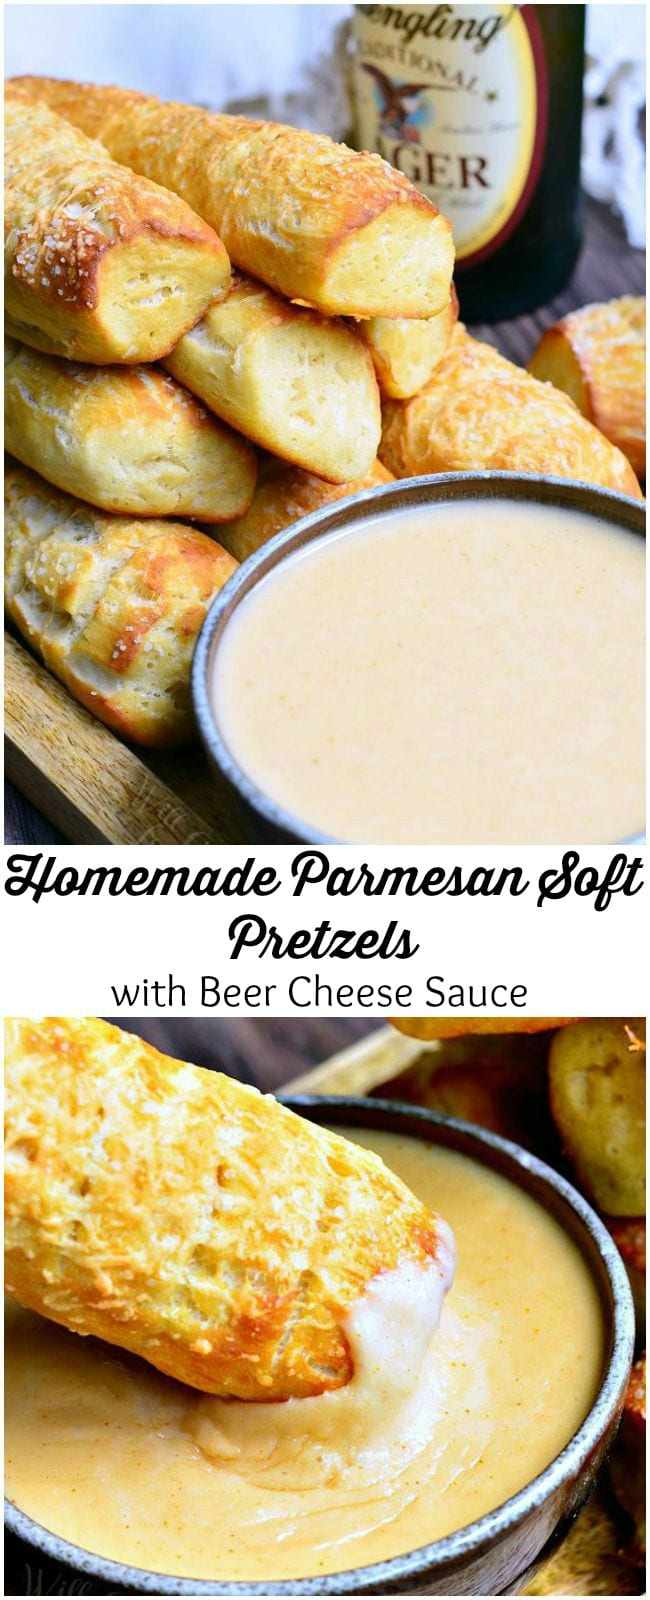 Beer Cheese Dip and Homemade Soft Pretzels. Homemade soft pretzels made with fresh grated Parmesan cheese inside and out. and paired perfectly with quick and simple beer cheese dip. #dip #cheesedip #beercheese #pretzels #snack #appetizer #gamedayfood